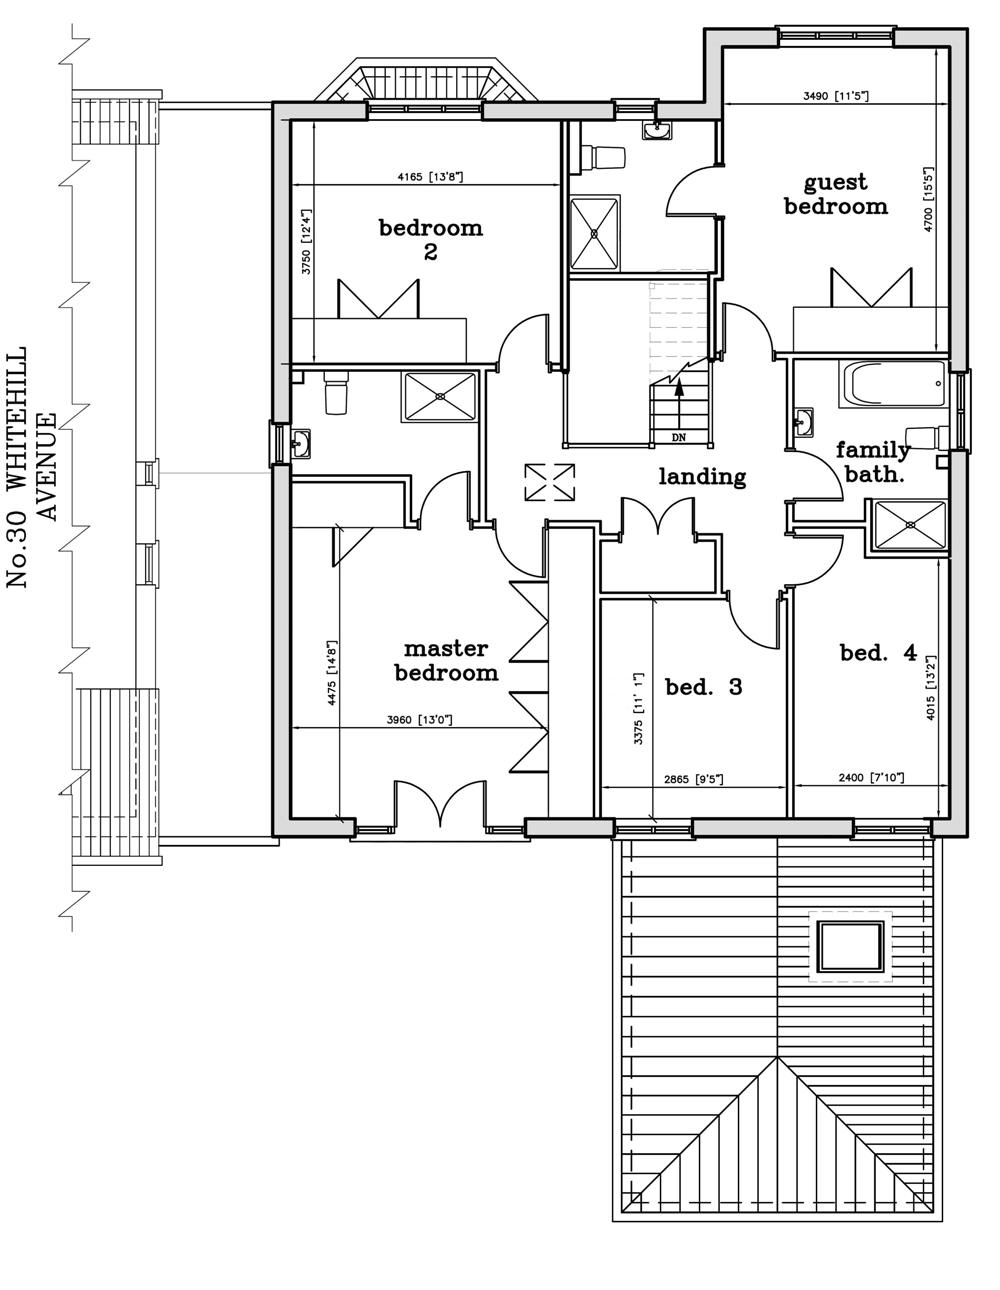 whitehill_first_floor_plan